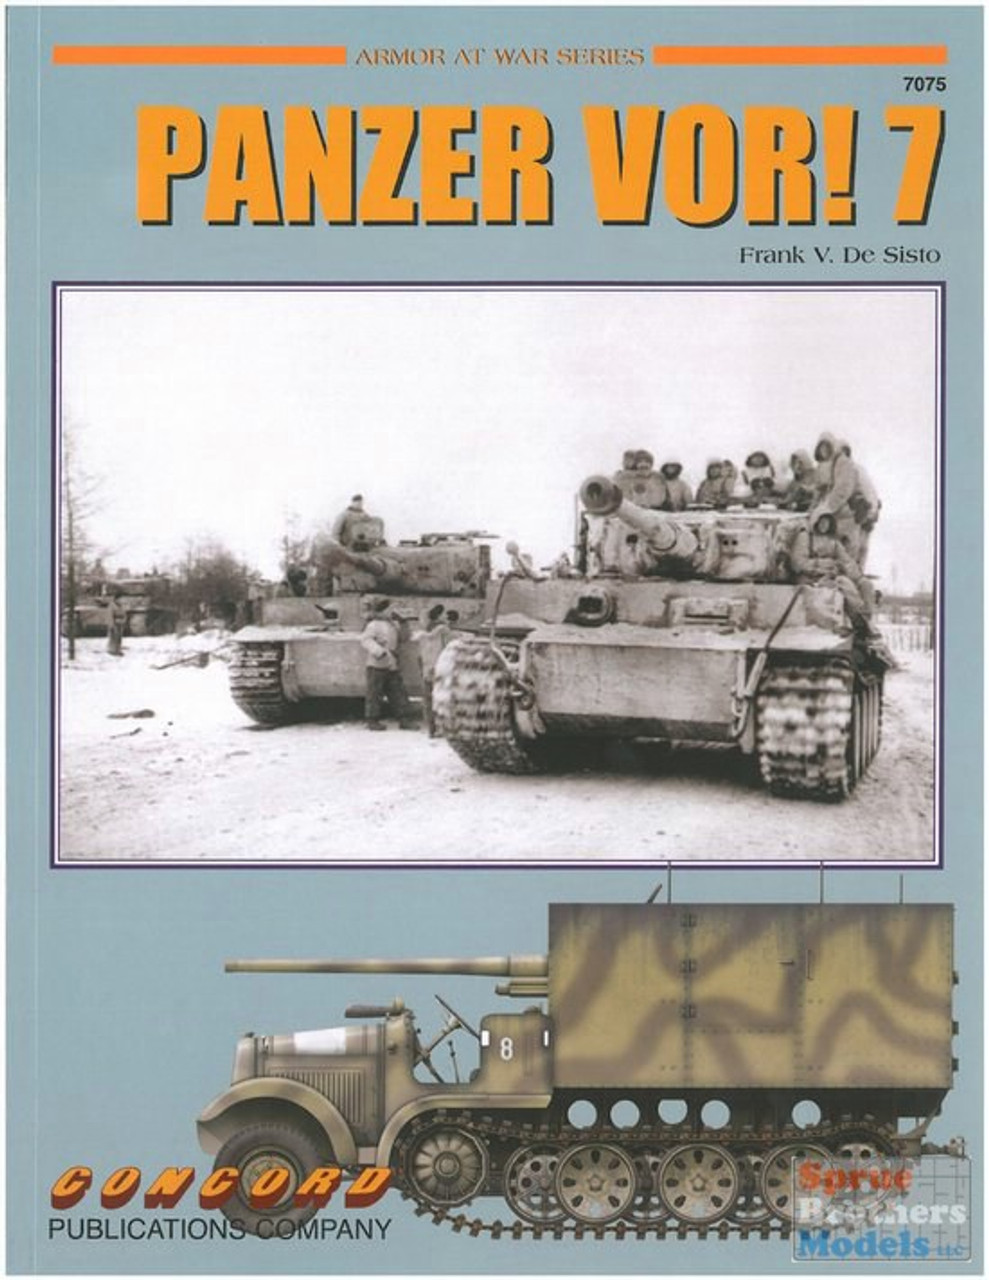 CCD7075 Concord Publications - Panzer VOR! 7 - German Armor at War 1939-45